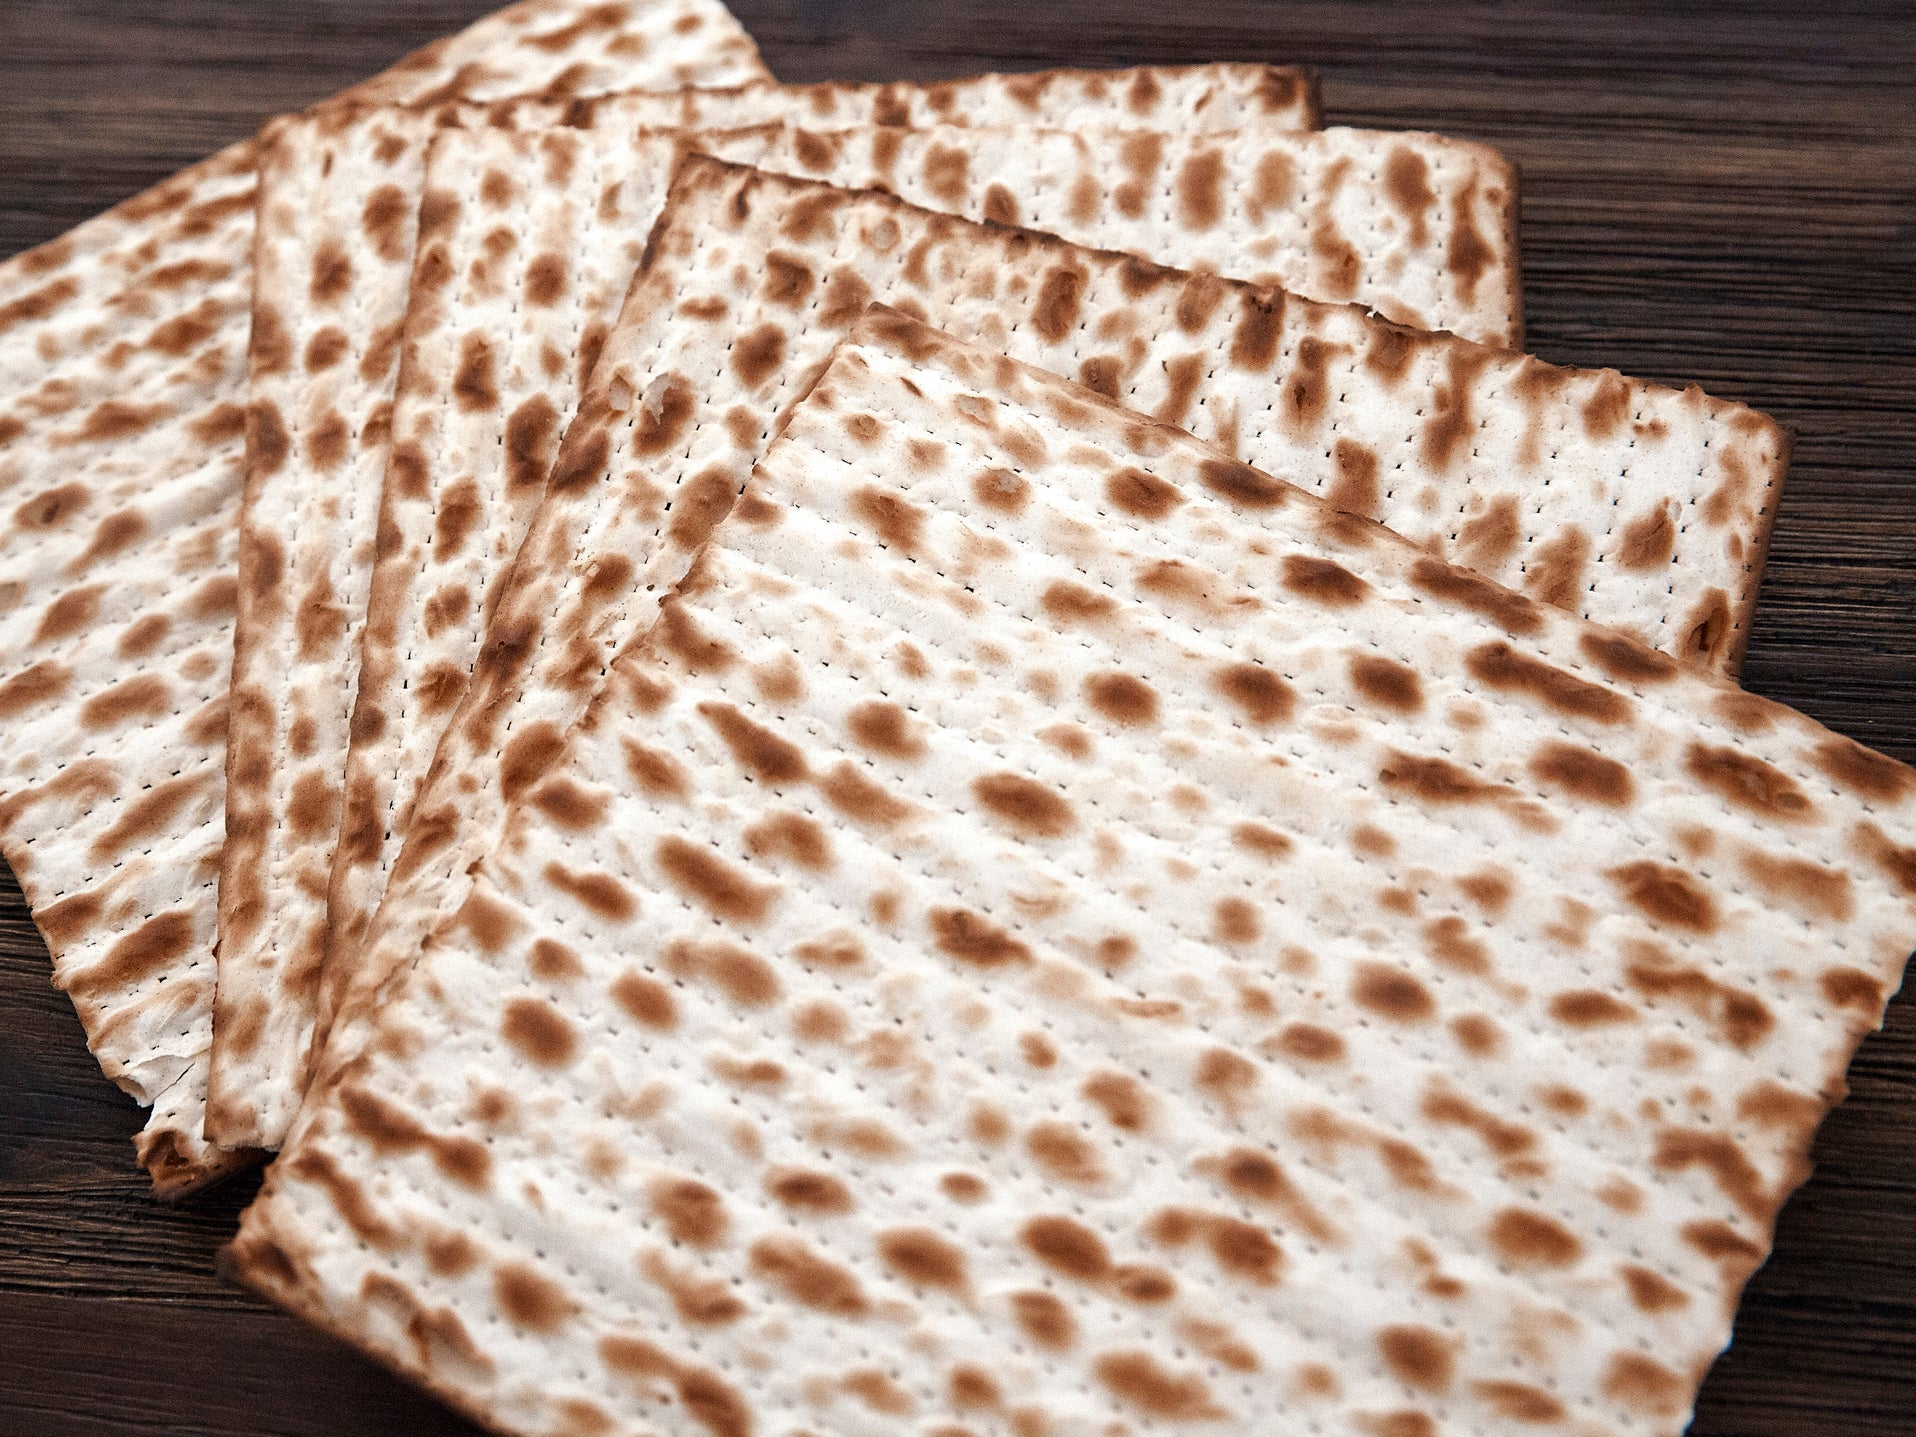 Passover 2019: The meaning of the foods eaten during the